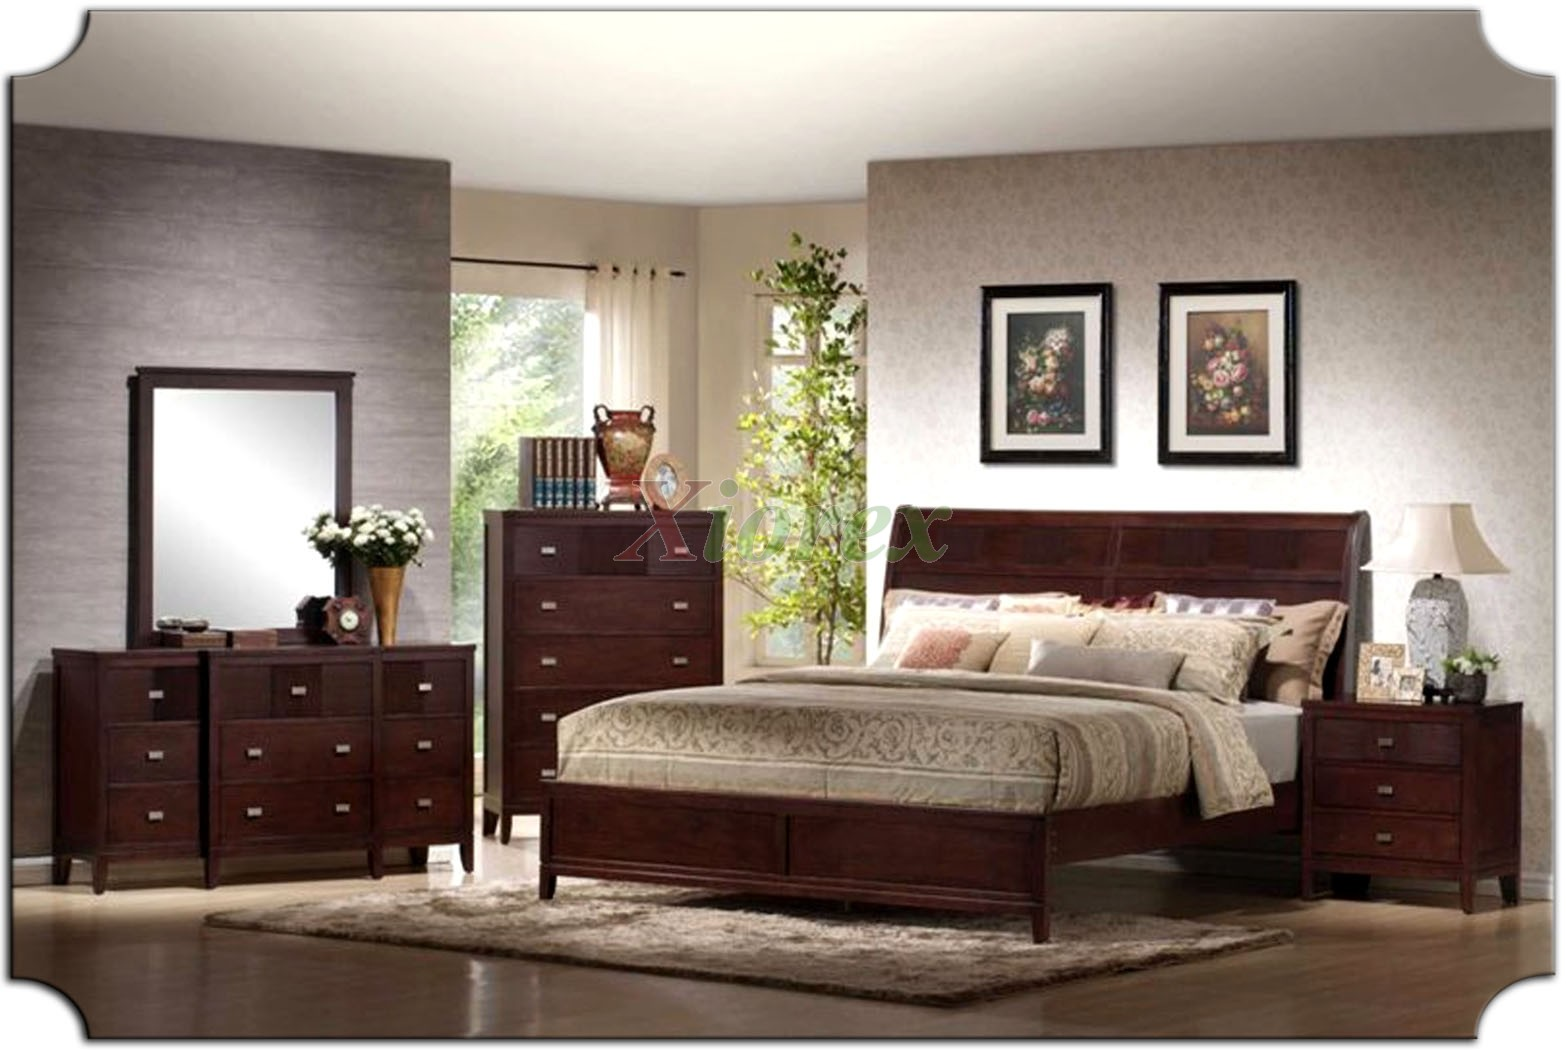 Bedroom Set line Shopping India